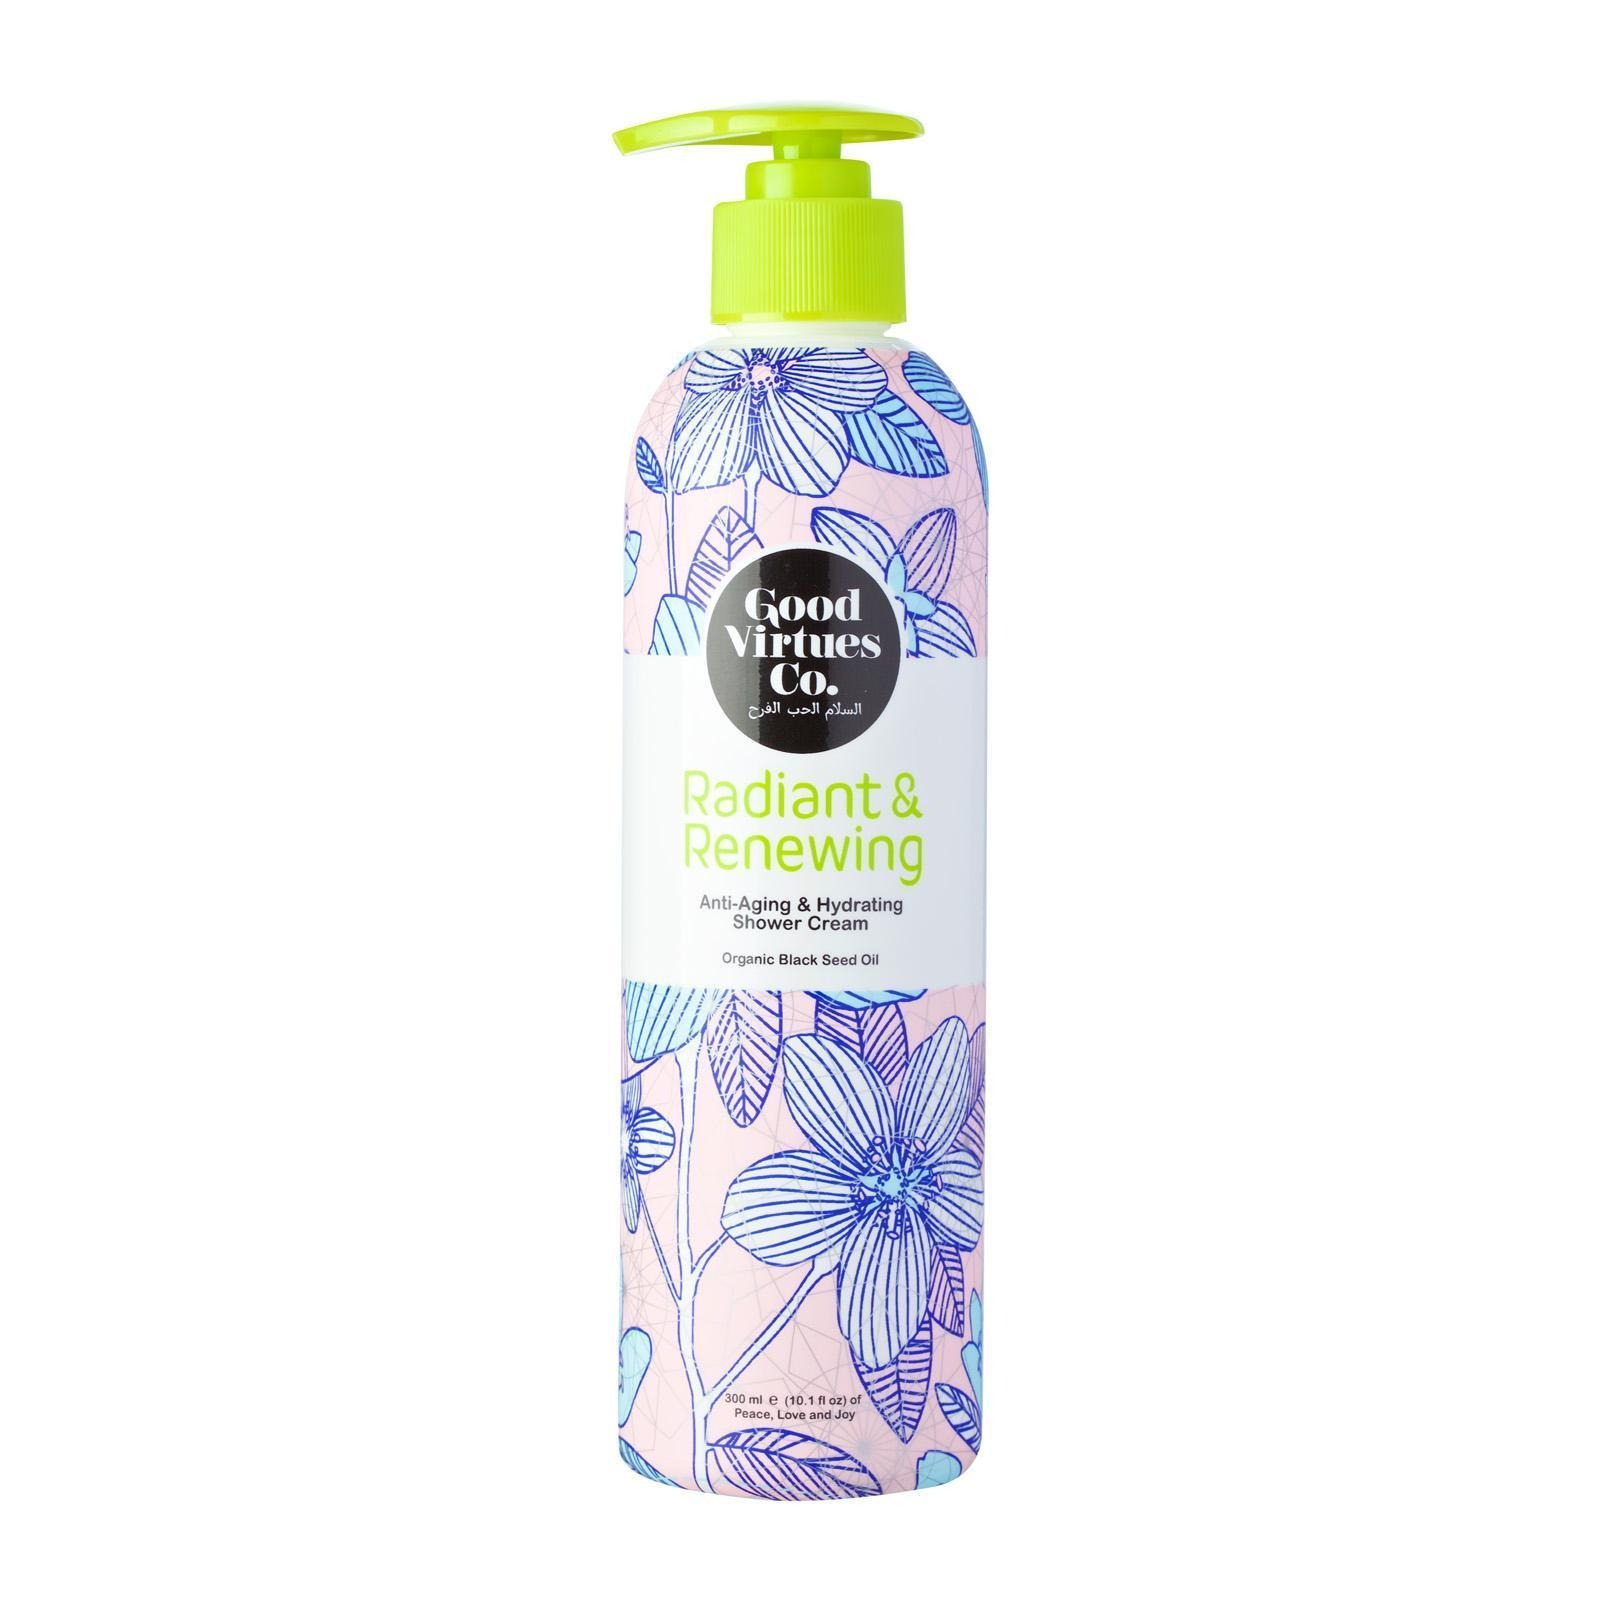 Good Virtues Co. Radiant & Renewing Anti-Aging & Hydrating Shower